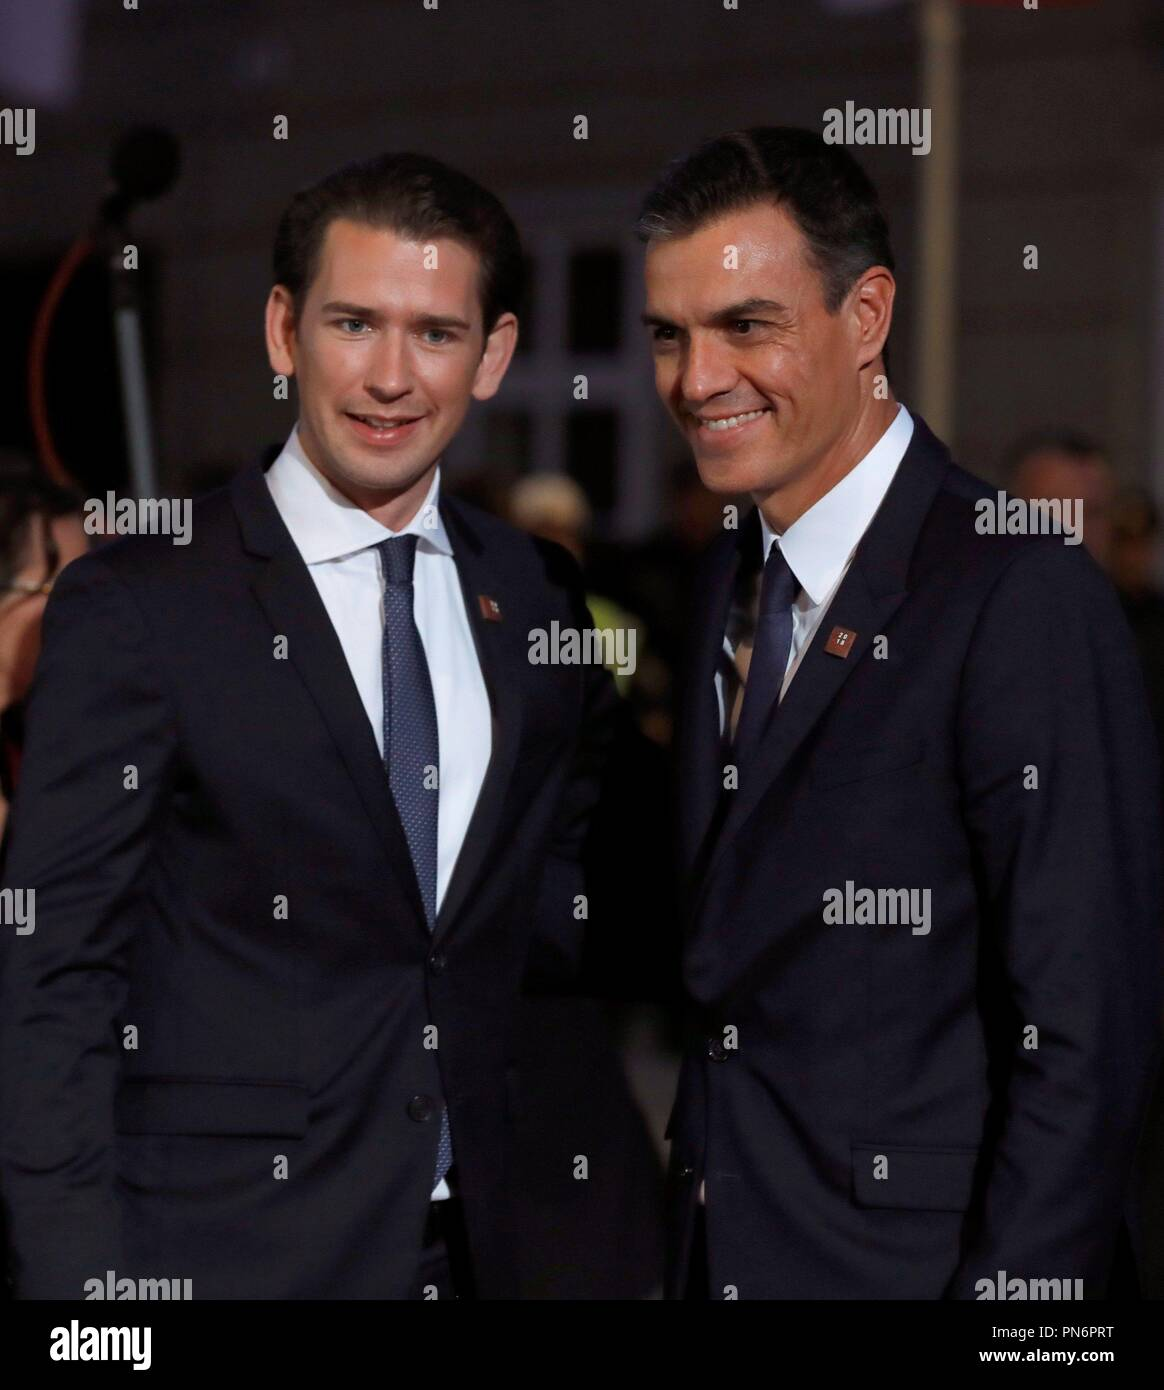 ¿Cuánto mide Pedro Sánchez? - Altura - Real height - Página 4 Salzburg-austria-20th-sep-2018-austrian-chancellor-sebastian-kurz-l-greets-spanish-prime-minister-pedro-sanchez-r-as-he-arrives-for-the-european-unions-eu-informal-heads-of-state-summit-in-salzburg-austria-20-september-2018-eu-countries-leaders-meet-on-19-and-20-september-for-a-summit-to-discuss-internal-security-measures-migration-and-brexit-credit-juanjo-martinefealamy-live-news-PN6PRT